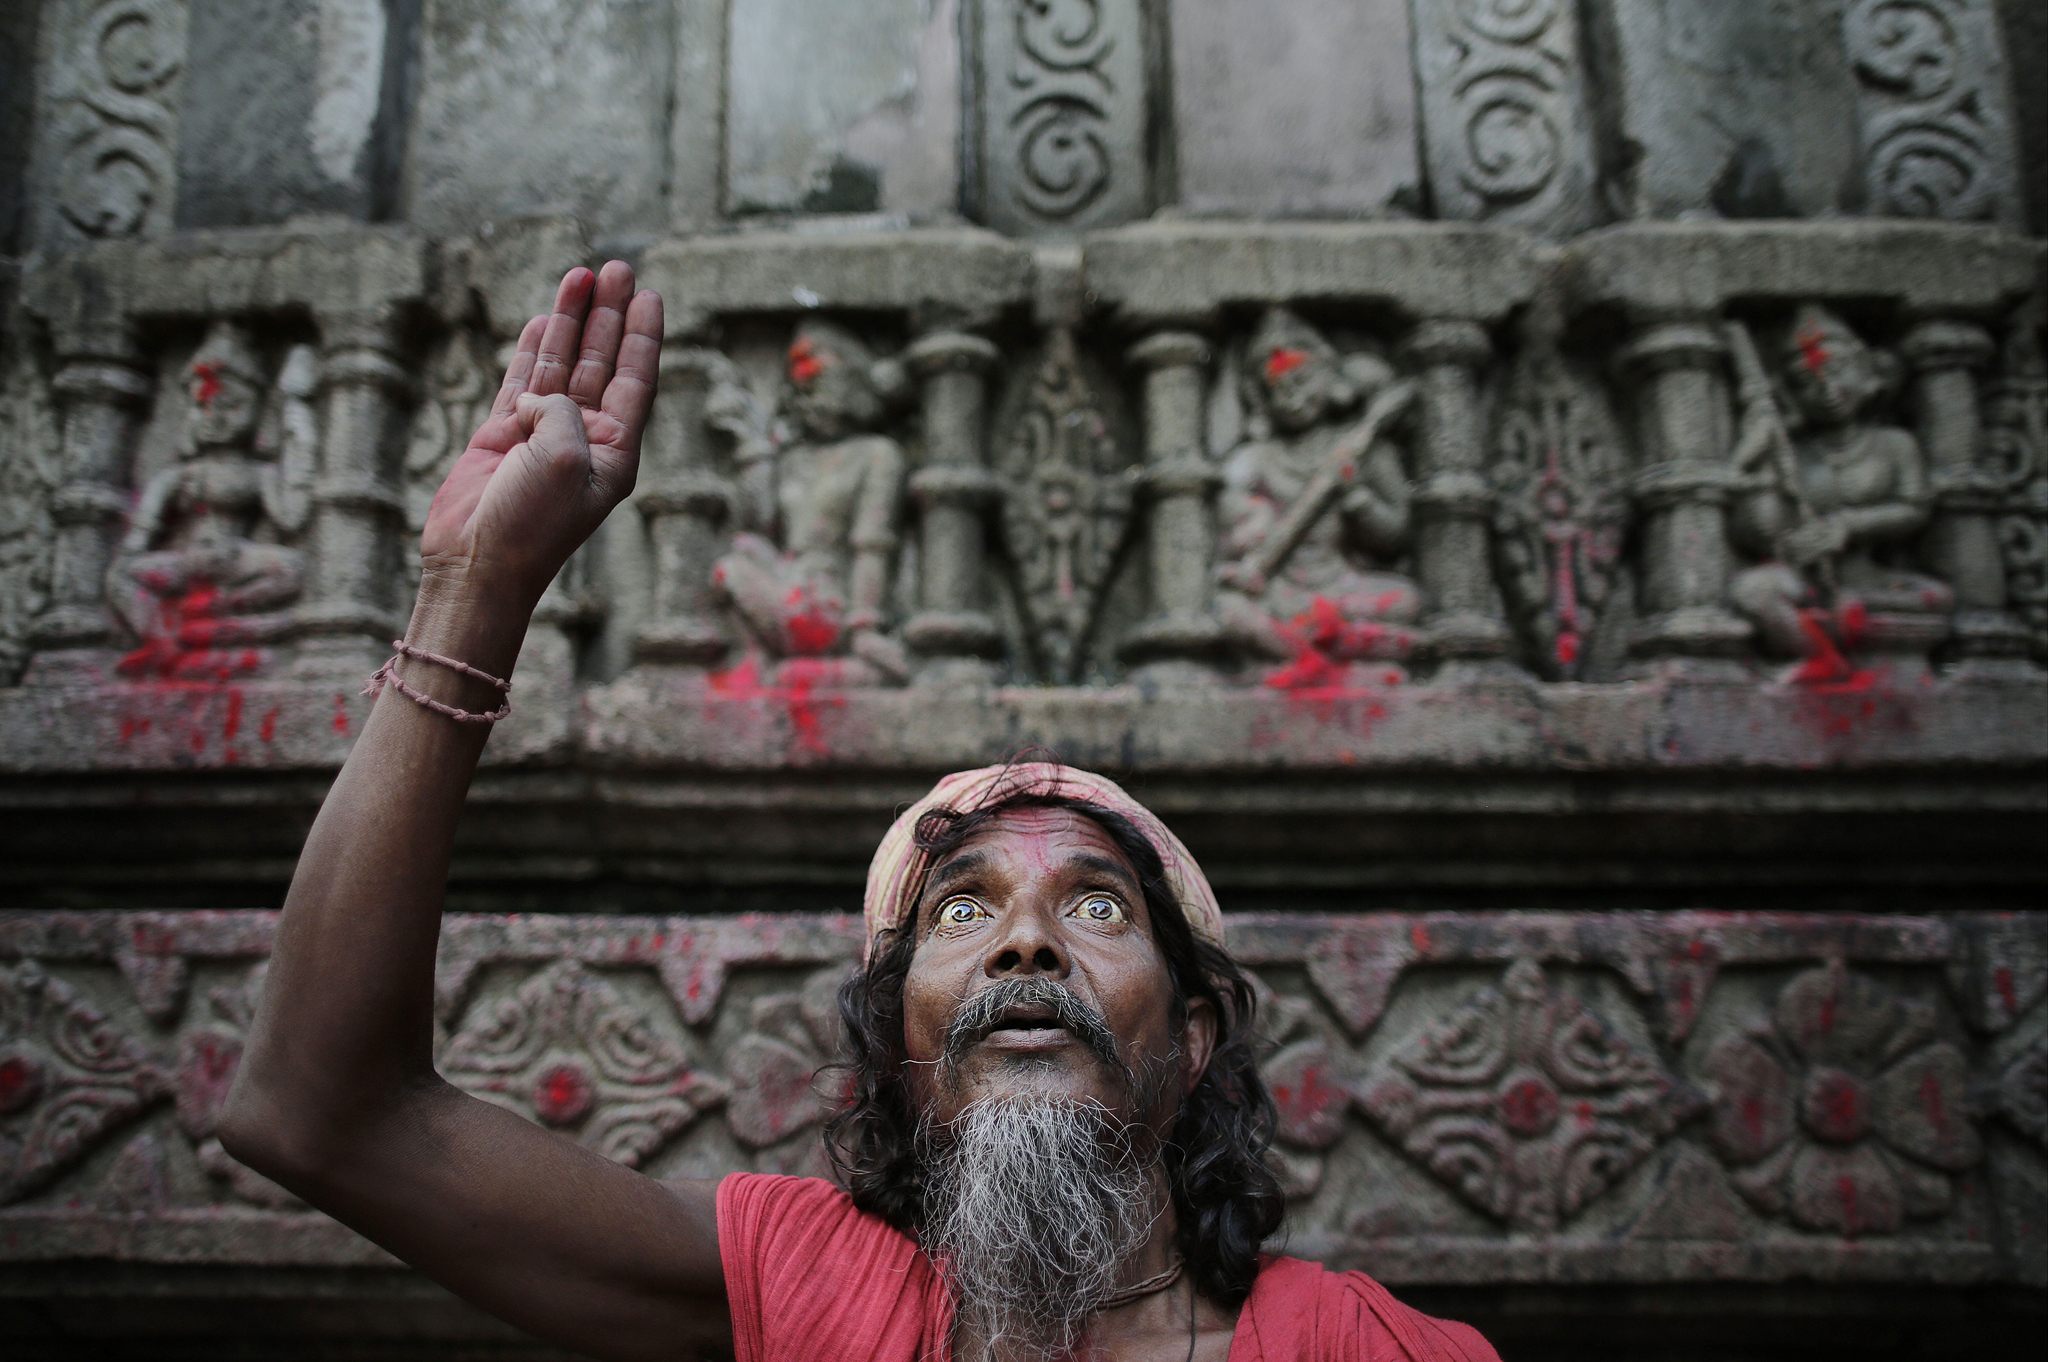 A man gestures to attract alms from devotees at the Kamakhya Hindu temple during the Ambubasi festival in Gauhati, India, Wednesday, June 25, 2014. The annual festival where hundreds of holy men from an esoteric form of Hinduism, gather to perform rituals ends Thursday. (AP Photo/Anupam Nath)